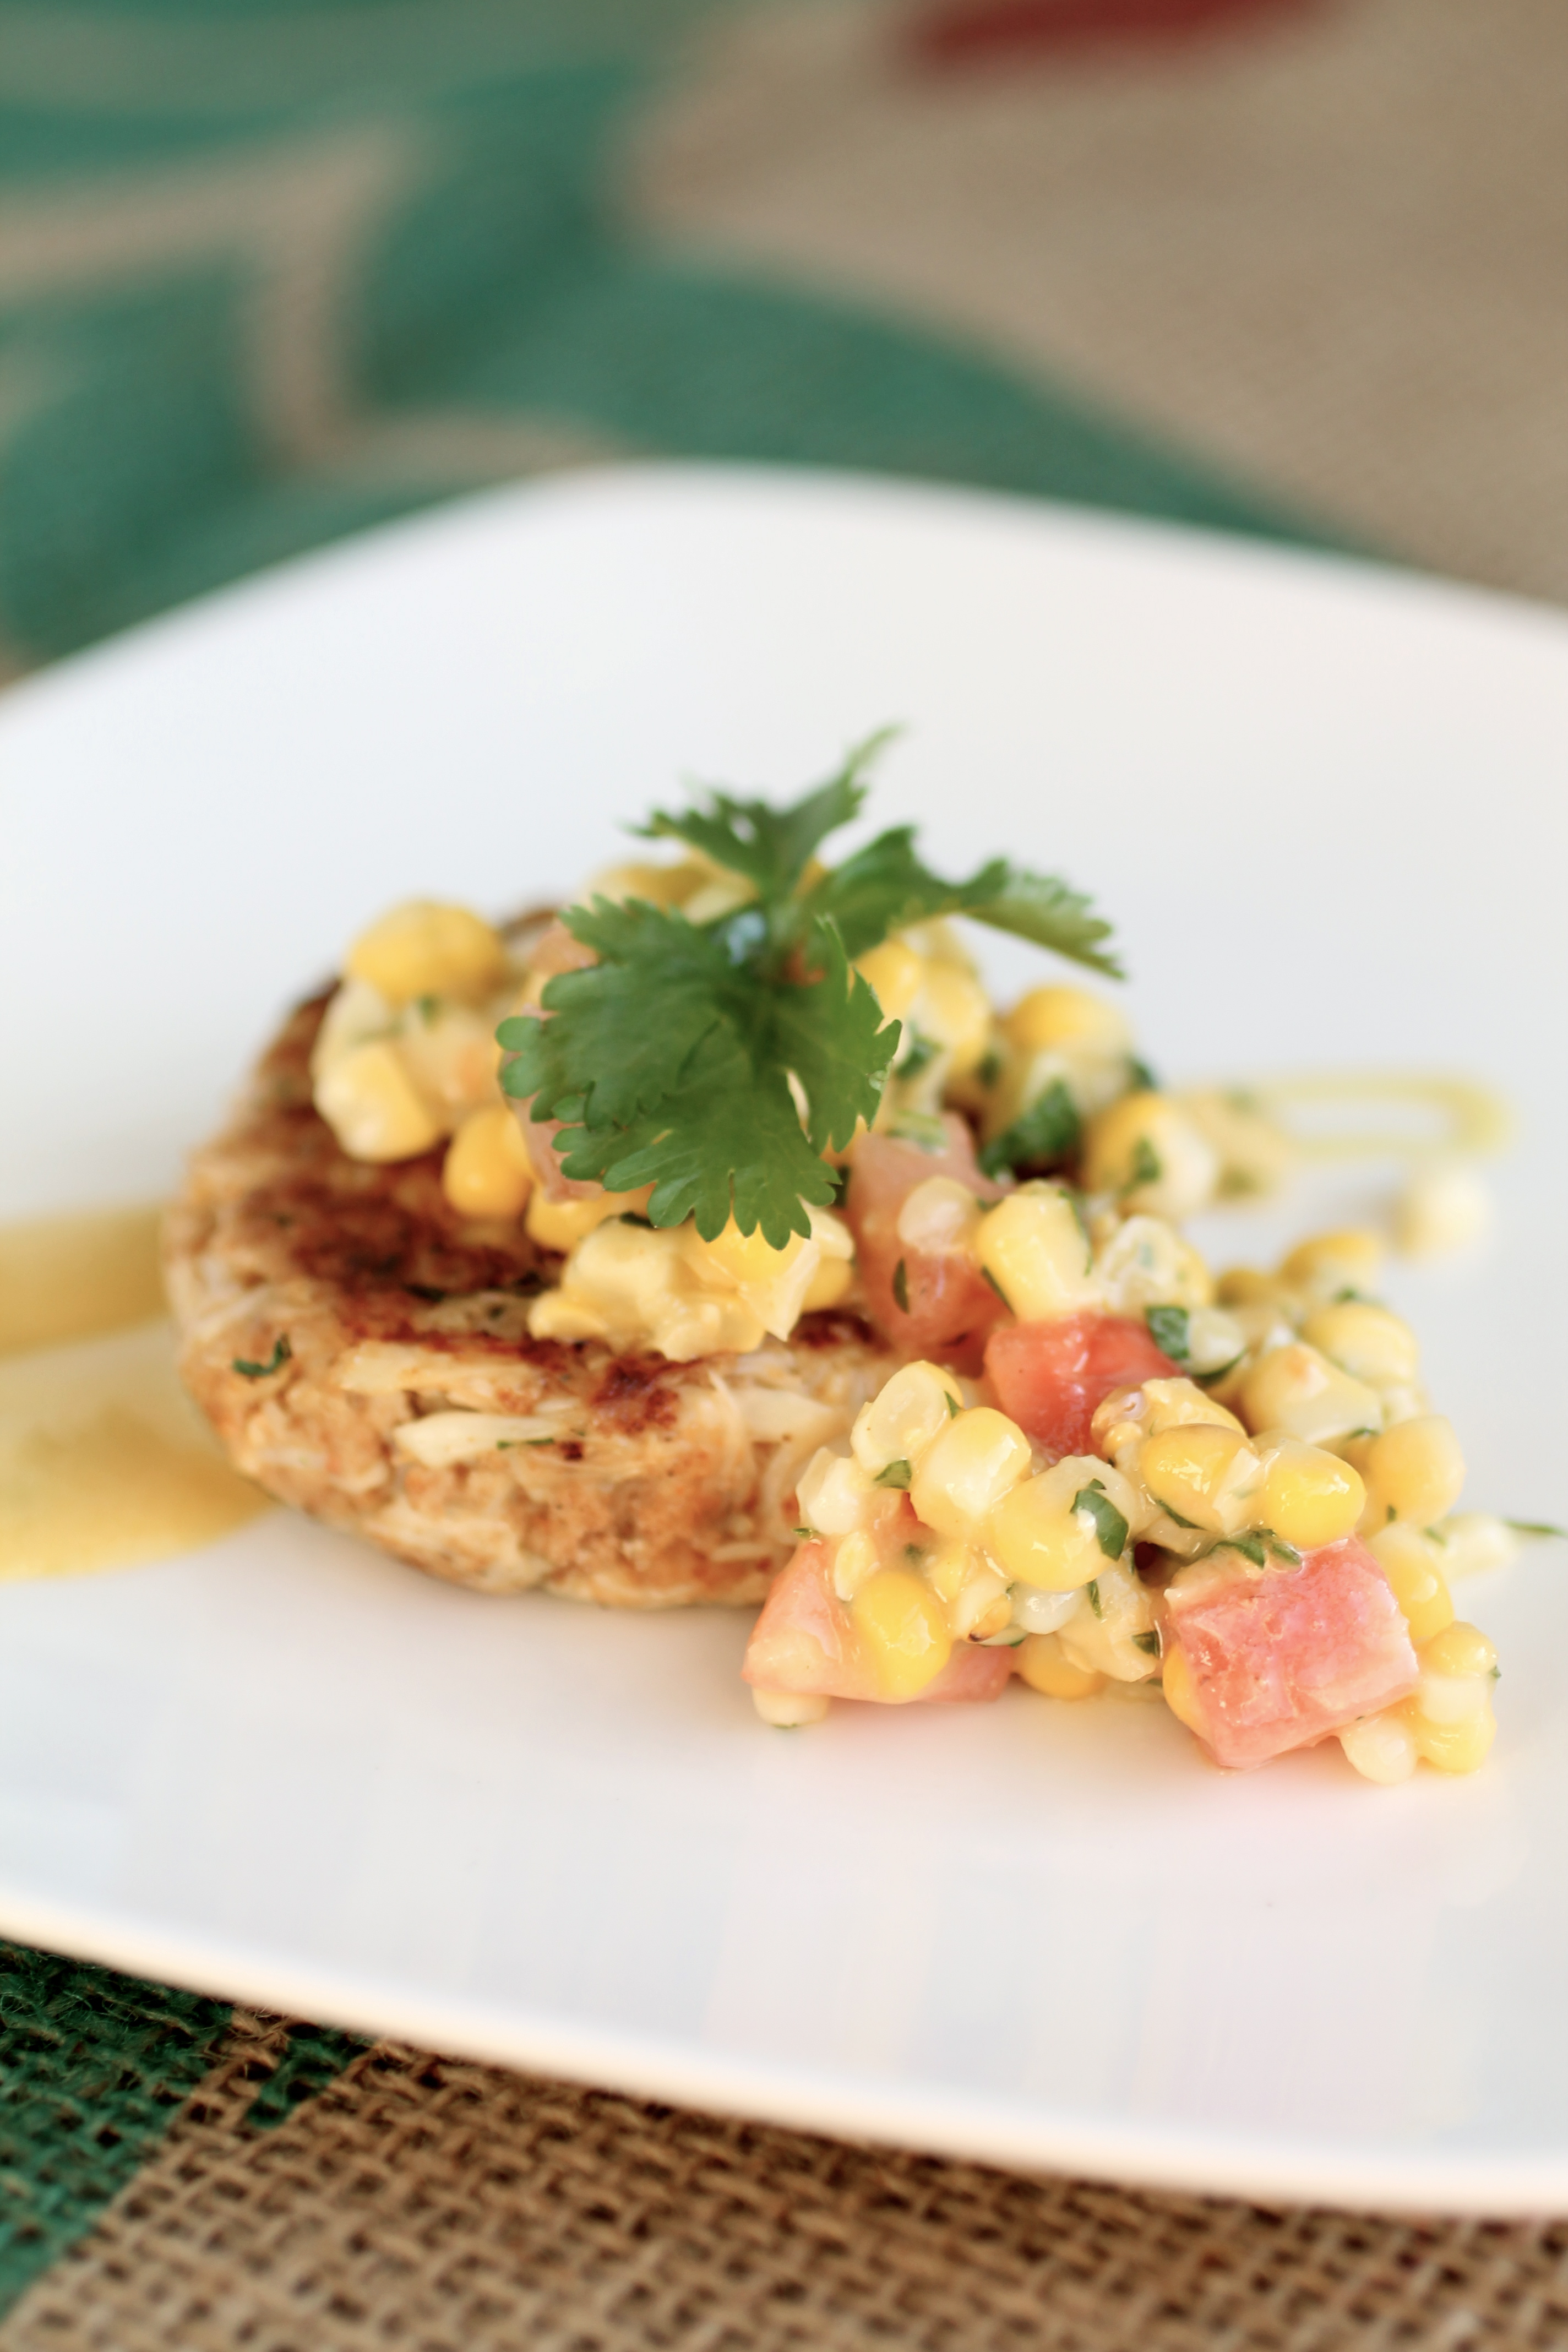 Crab cake topped with corn salsa and a sprig of fresh cilantro on a square white plate.